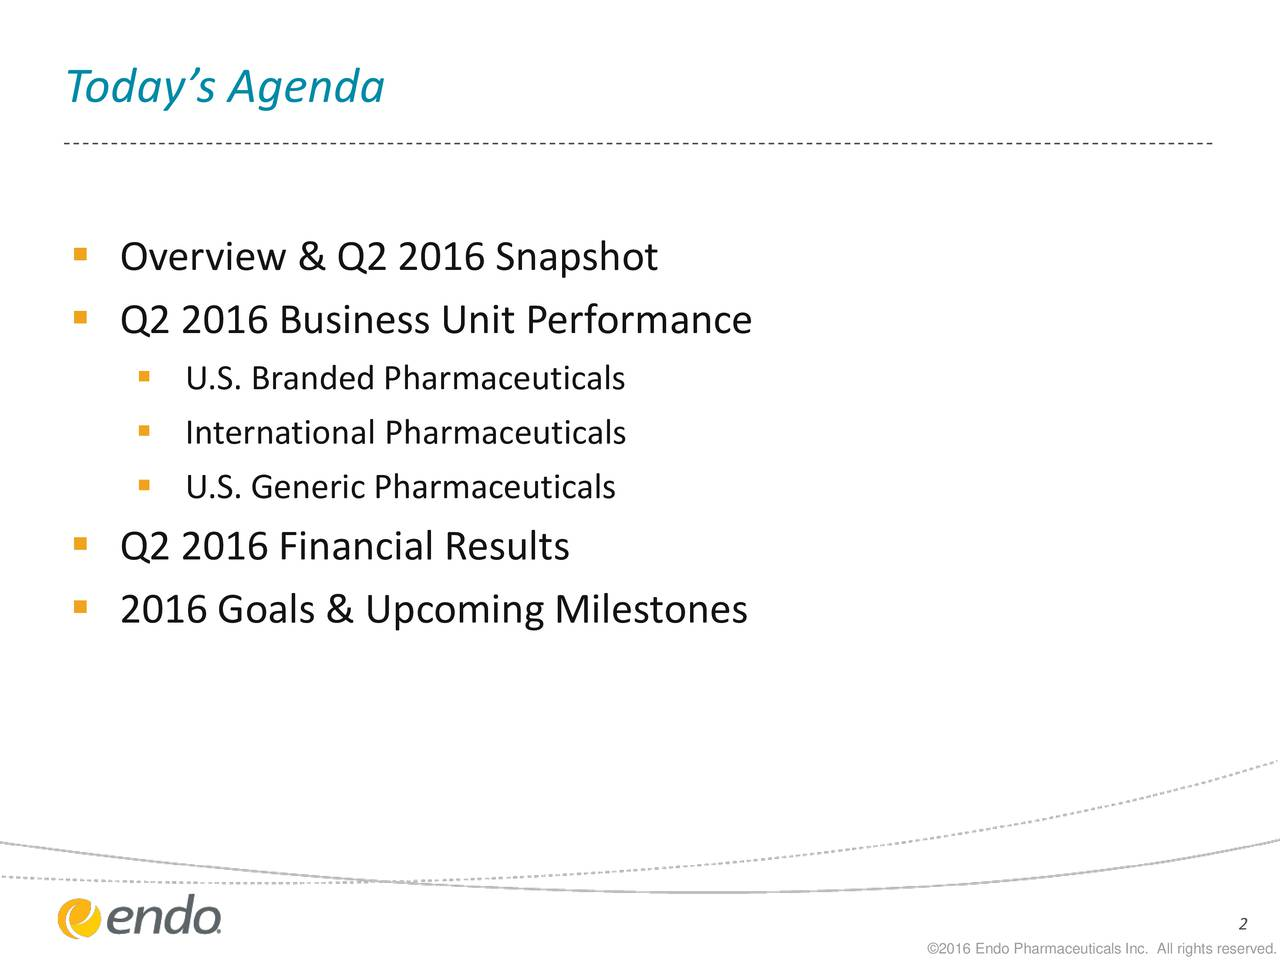 Overview & Q2 2016 Snapshot Q2 2016 Business Unit Performance U.S. Branded Pharmaceuticals International Pharmaceuticals U.S. Generic Pharmaceuticals Q2 2016 Financial Results 2016 Goals & Upcoming Milestones 2